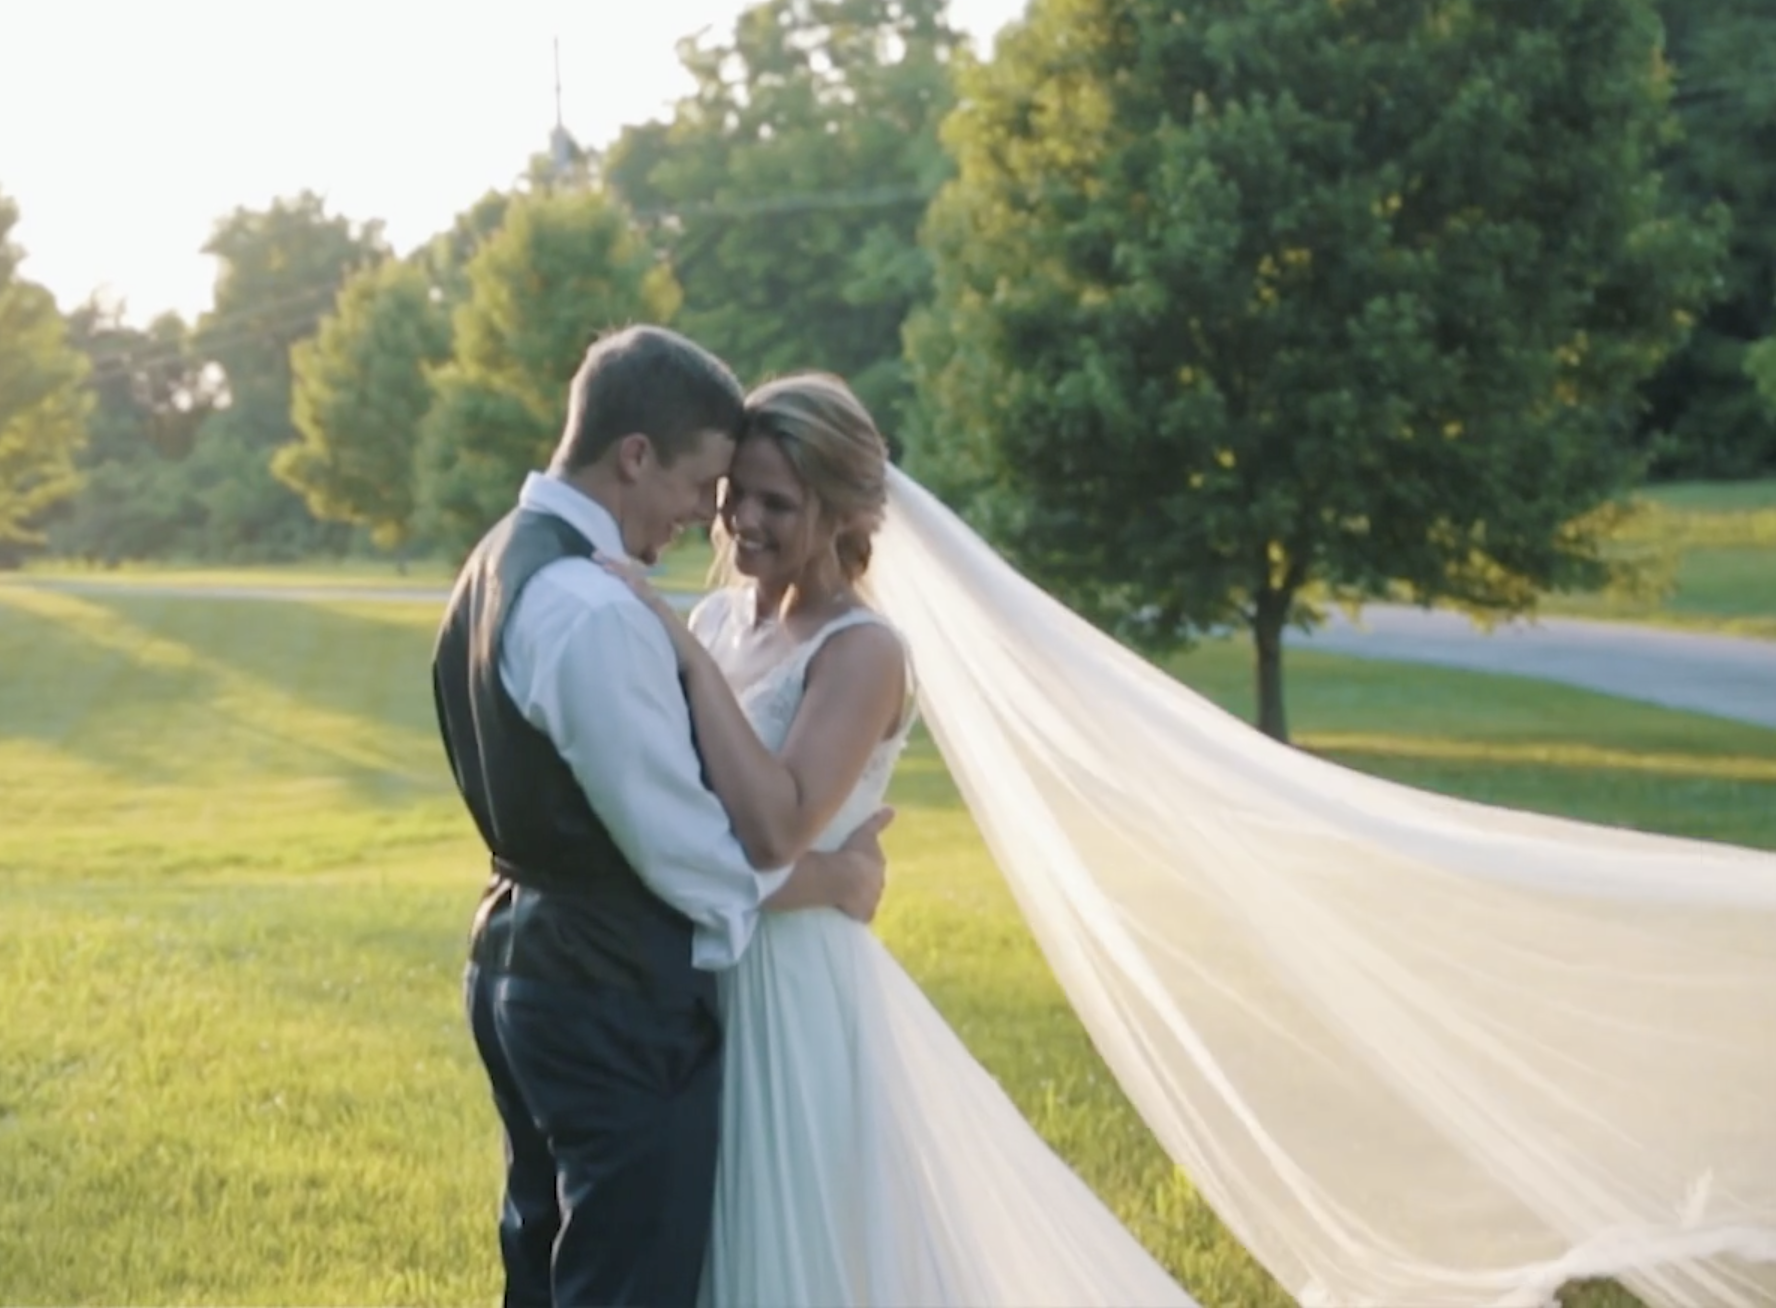 Payton + Lane | Elkins Grove, Kentucky | Elkins Grove Wedding Venue